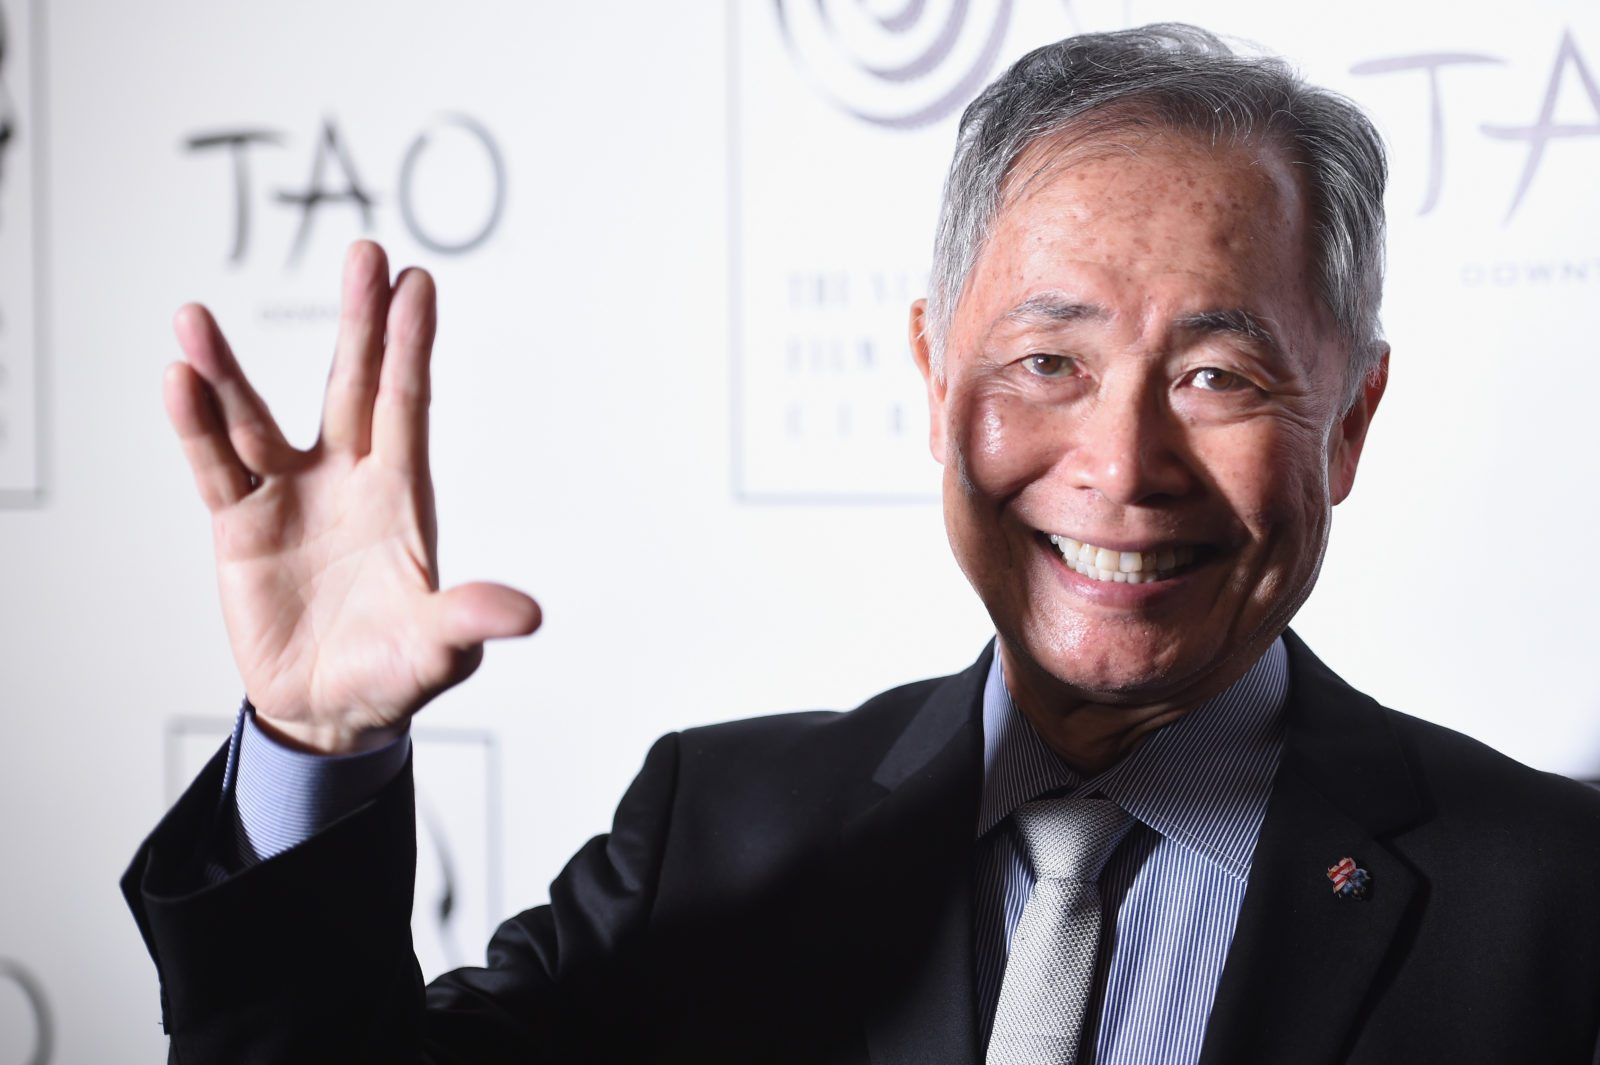 NEW YORK, NY - JANUARY 04: Actor George Takei attends 2015 New York Film Critics Circle Awards at TAO Downtown on January 4, 2016 in New York City. (Photo by Dimitrios Kambouris/Getty Images)